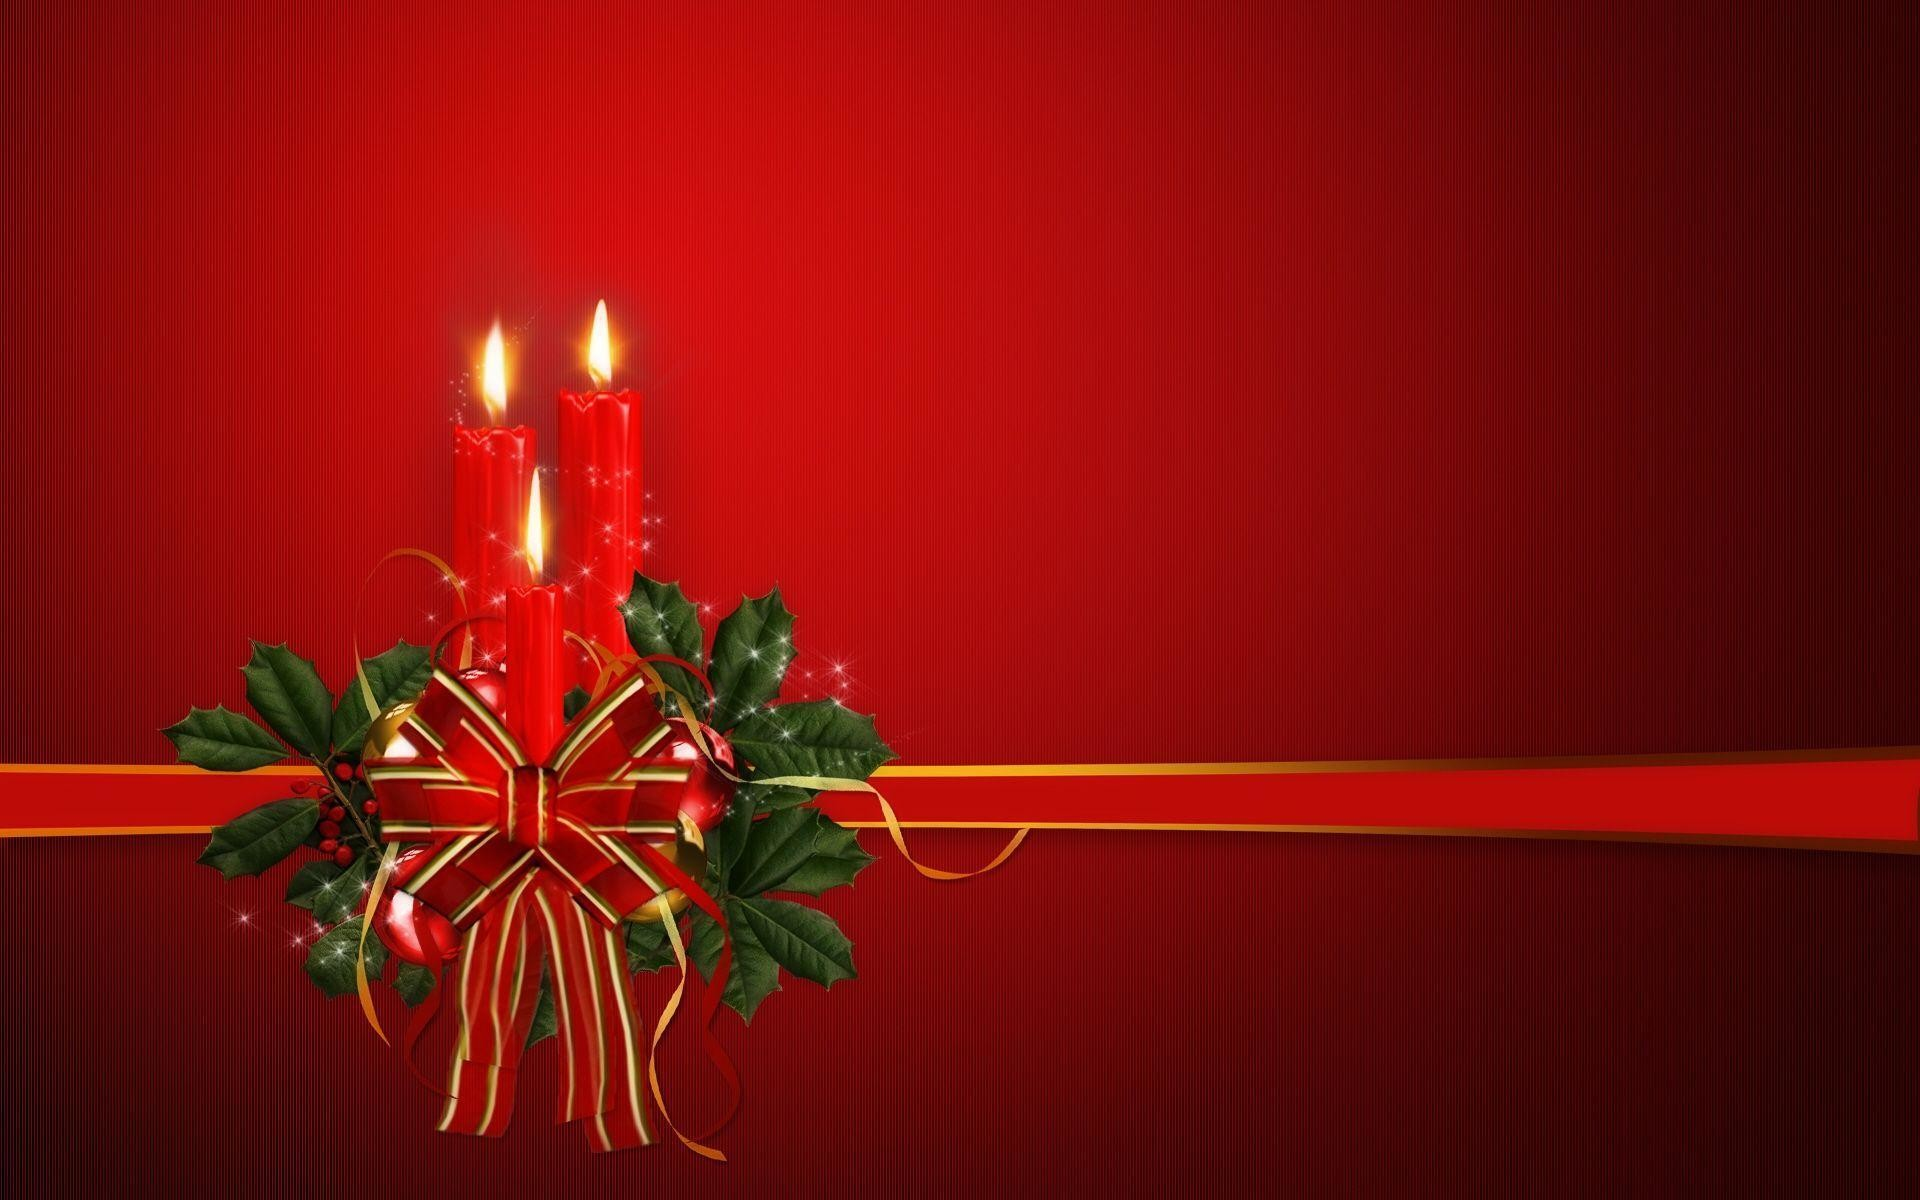 Christian Christmas Wallpapers Backgrounds Best Hd 1920x1200PX .